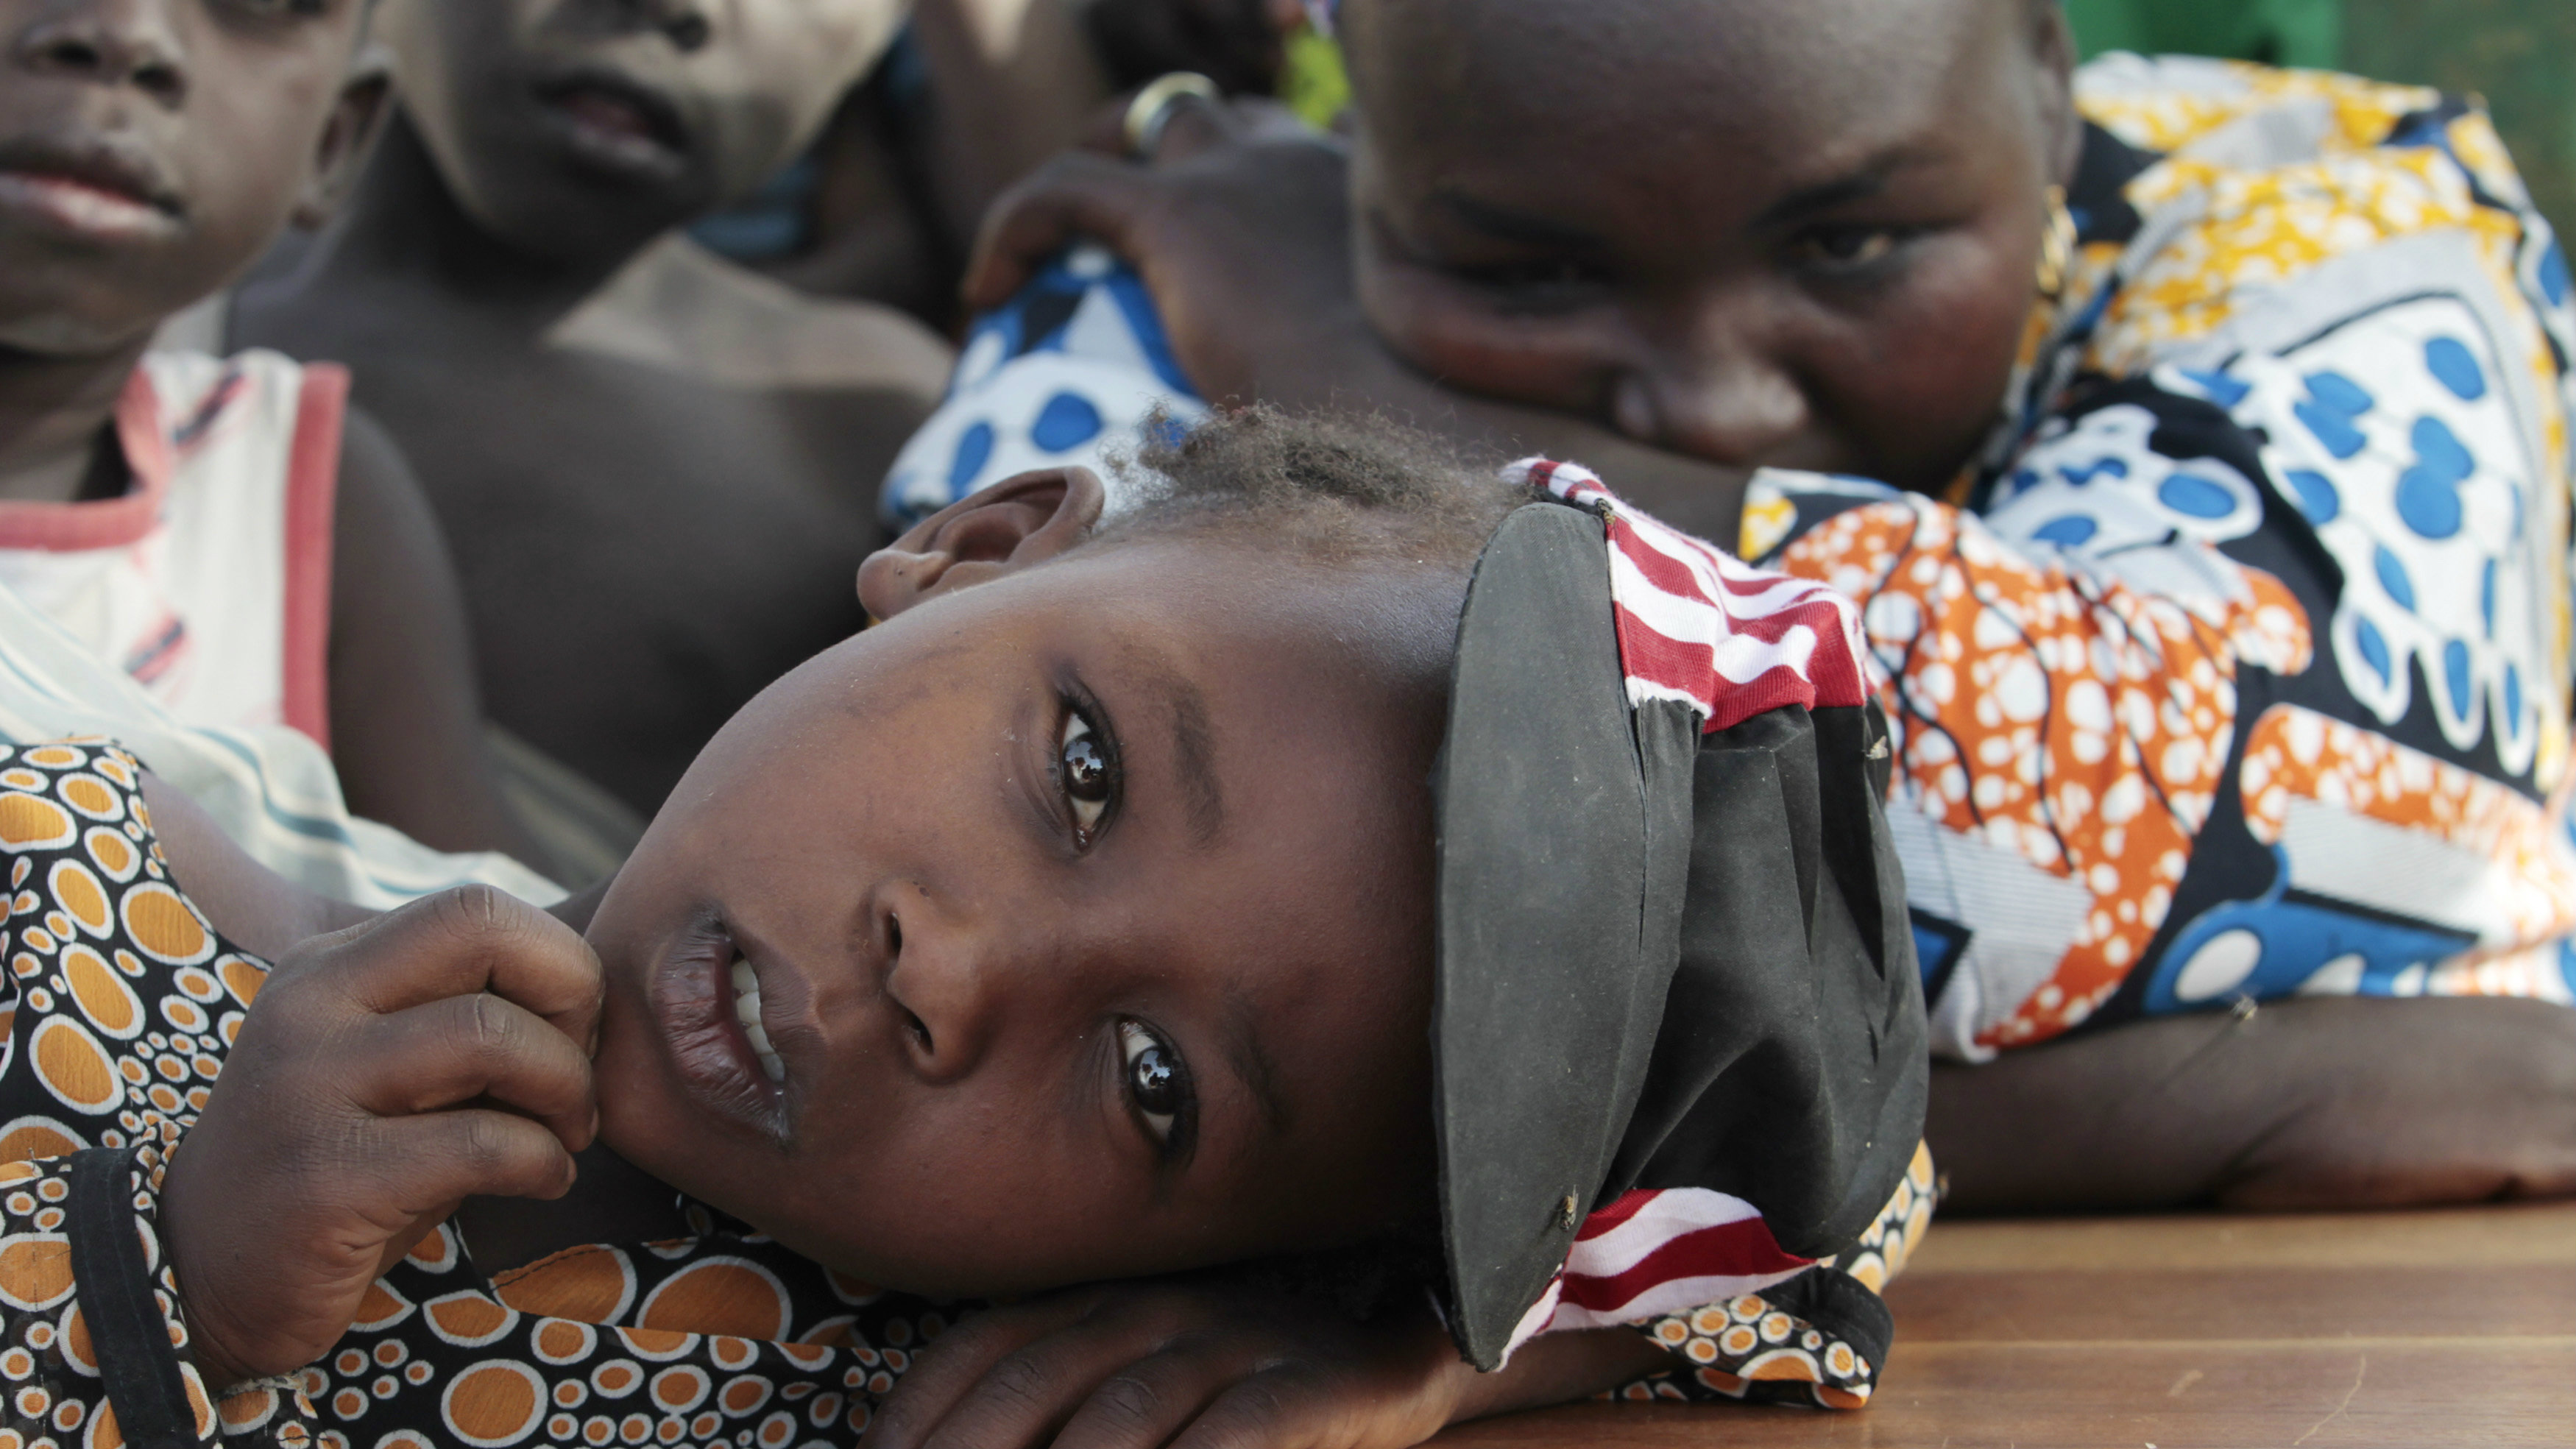 A girl displaced as a result of Boko Haram attack in the northeast region of Nigeria, rests her head on a desk at Maikohi secondary school camp for internally displaced persons (IDP) in Yola, Adamawa State January 13, 2015.